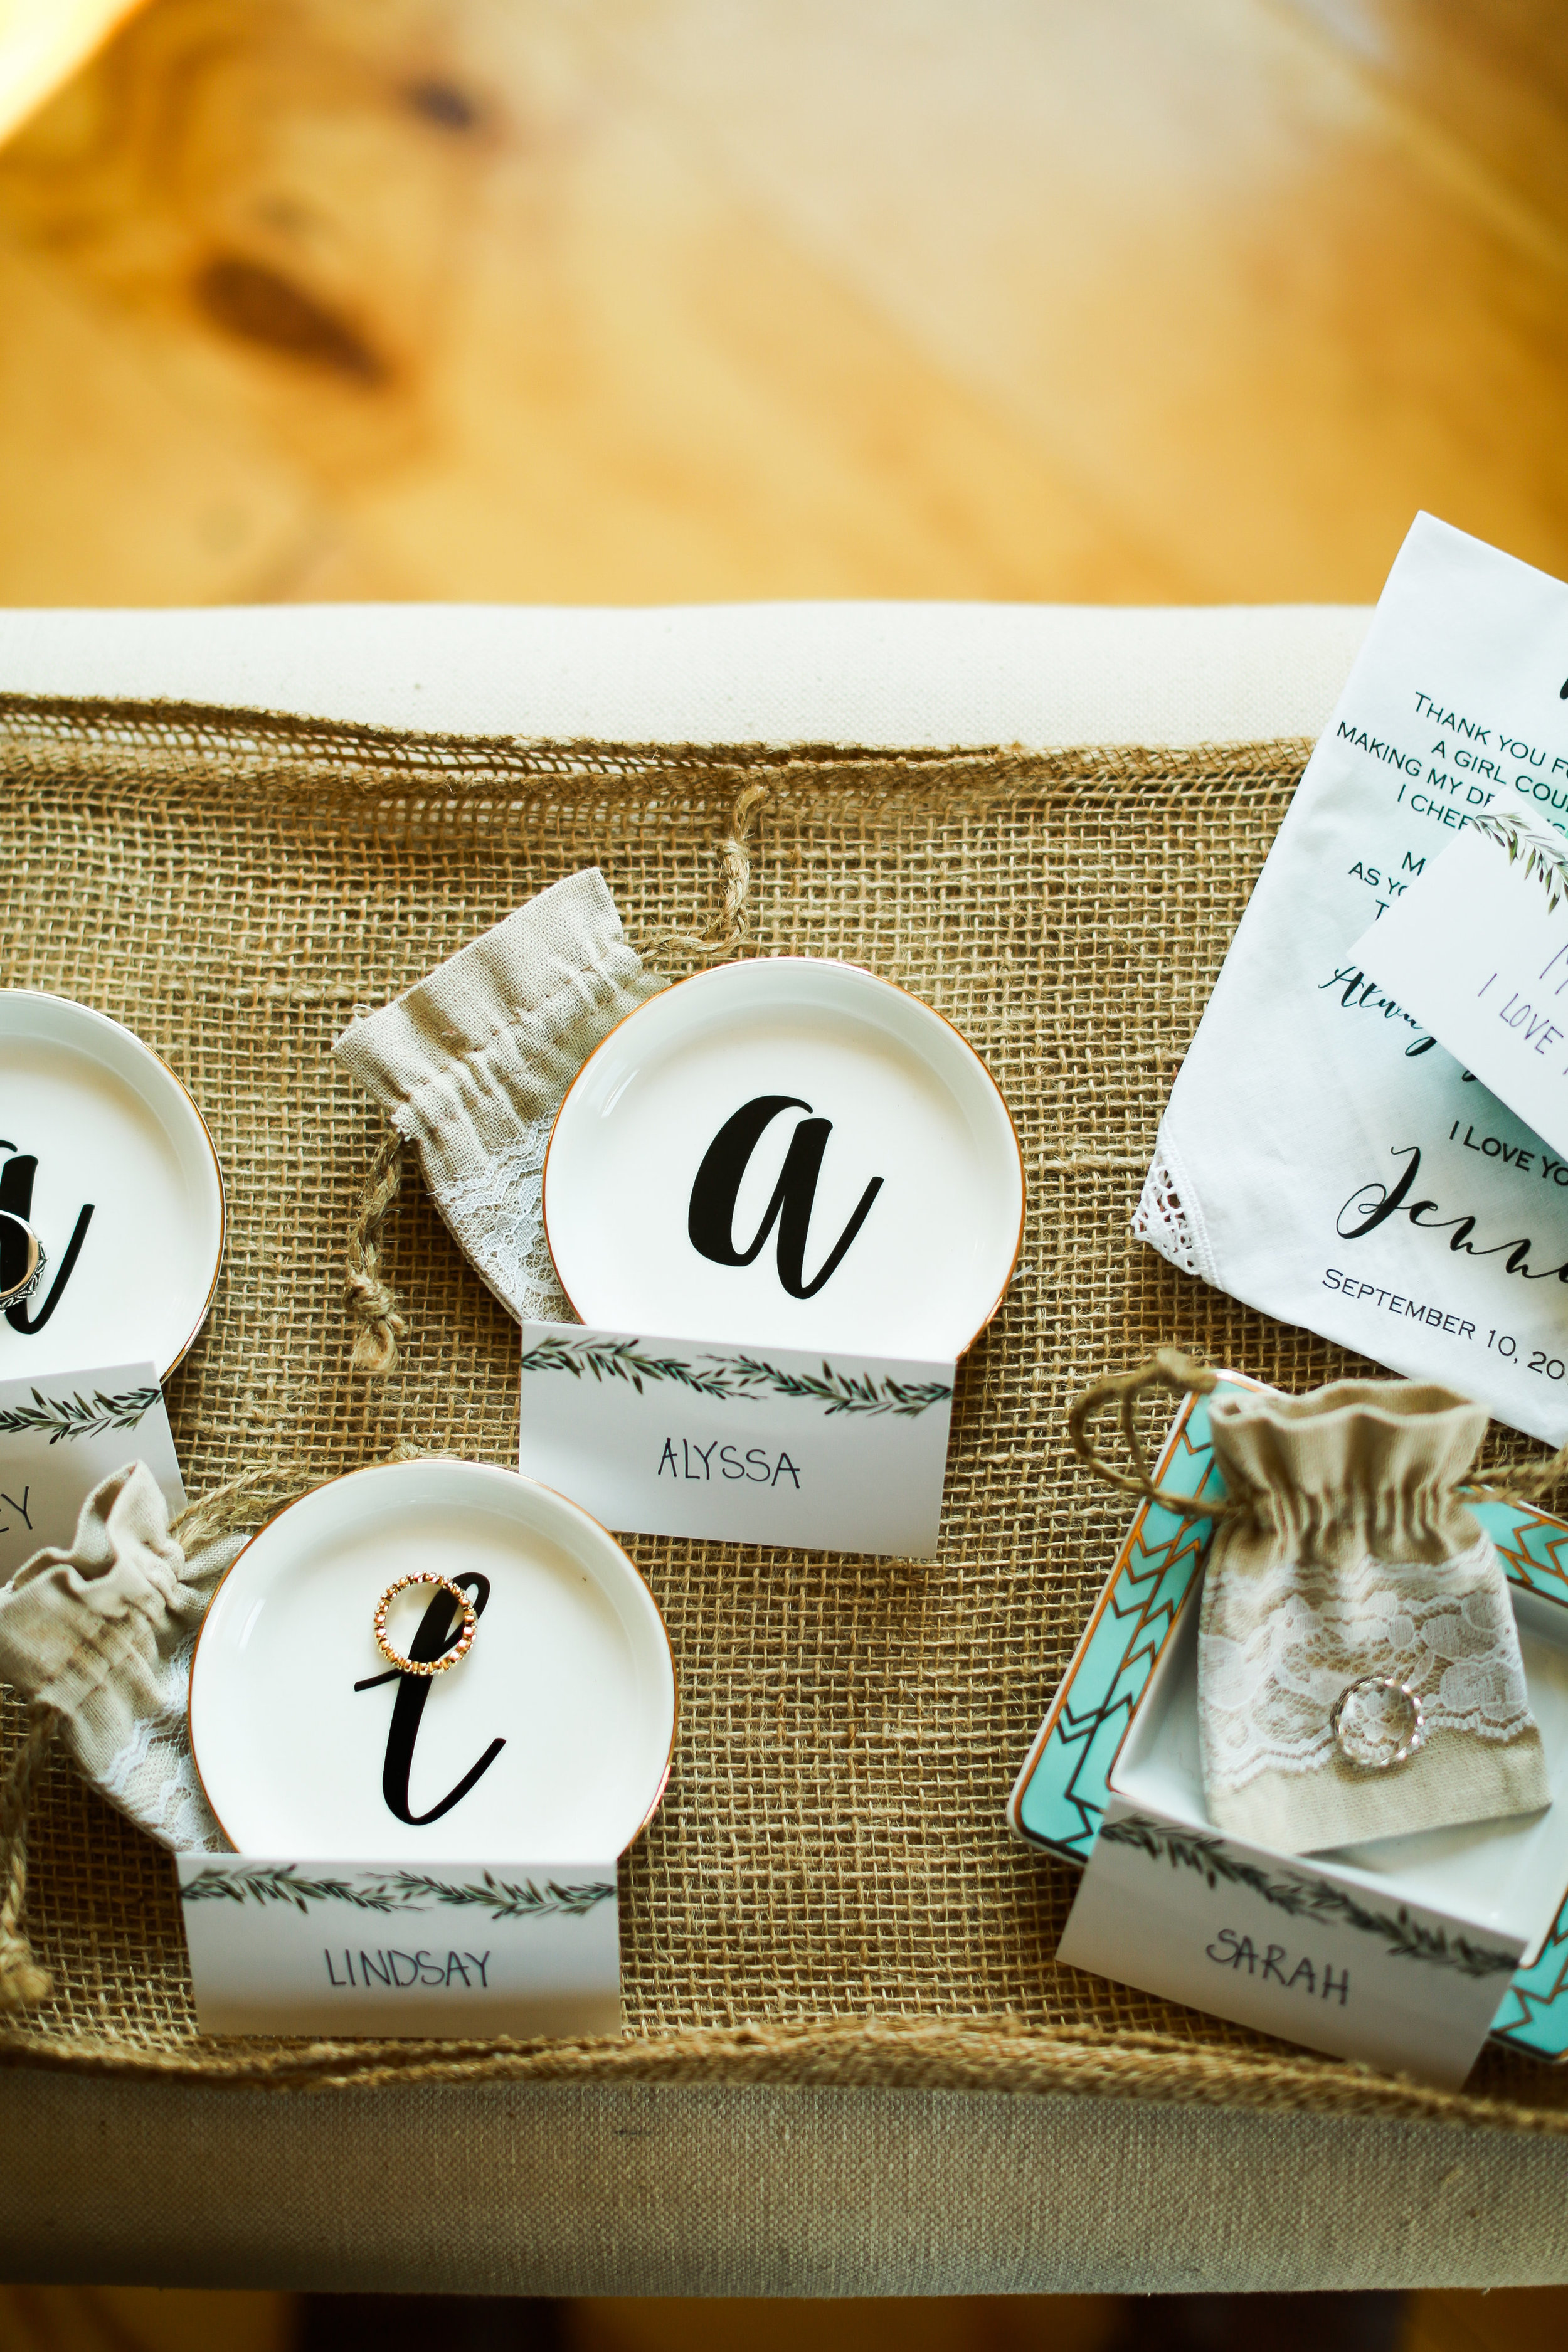 Jenna Kevin Wedding   Hannah Schmitt Photography   individual ring dish for bridal party and heirloom rings   Legacy Hill Farm